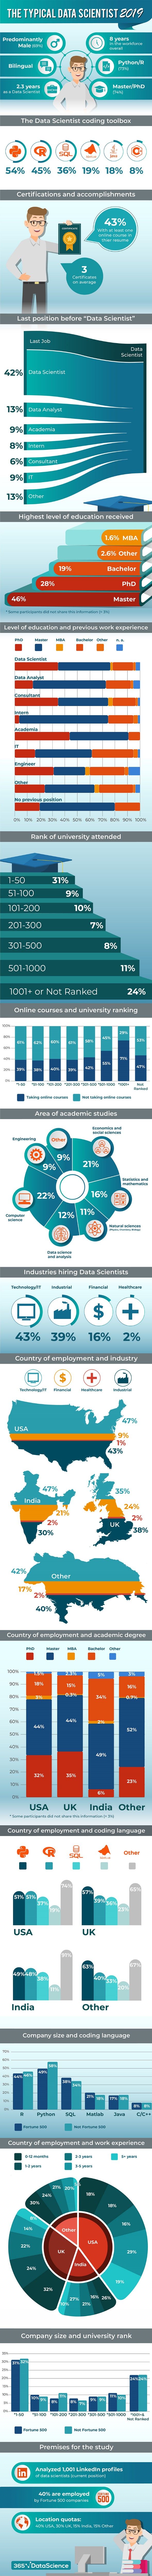 typical data scientist 2019 infographic